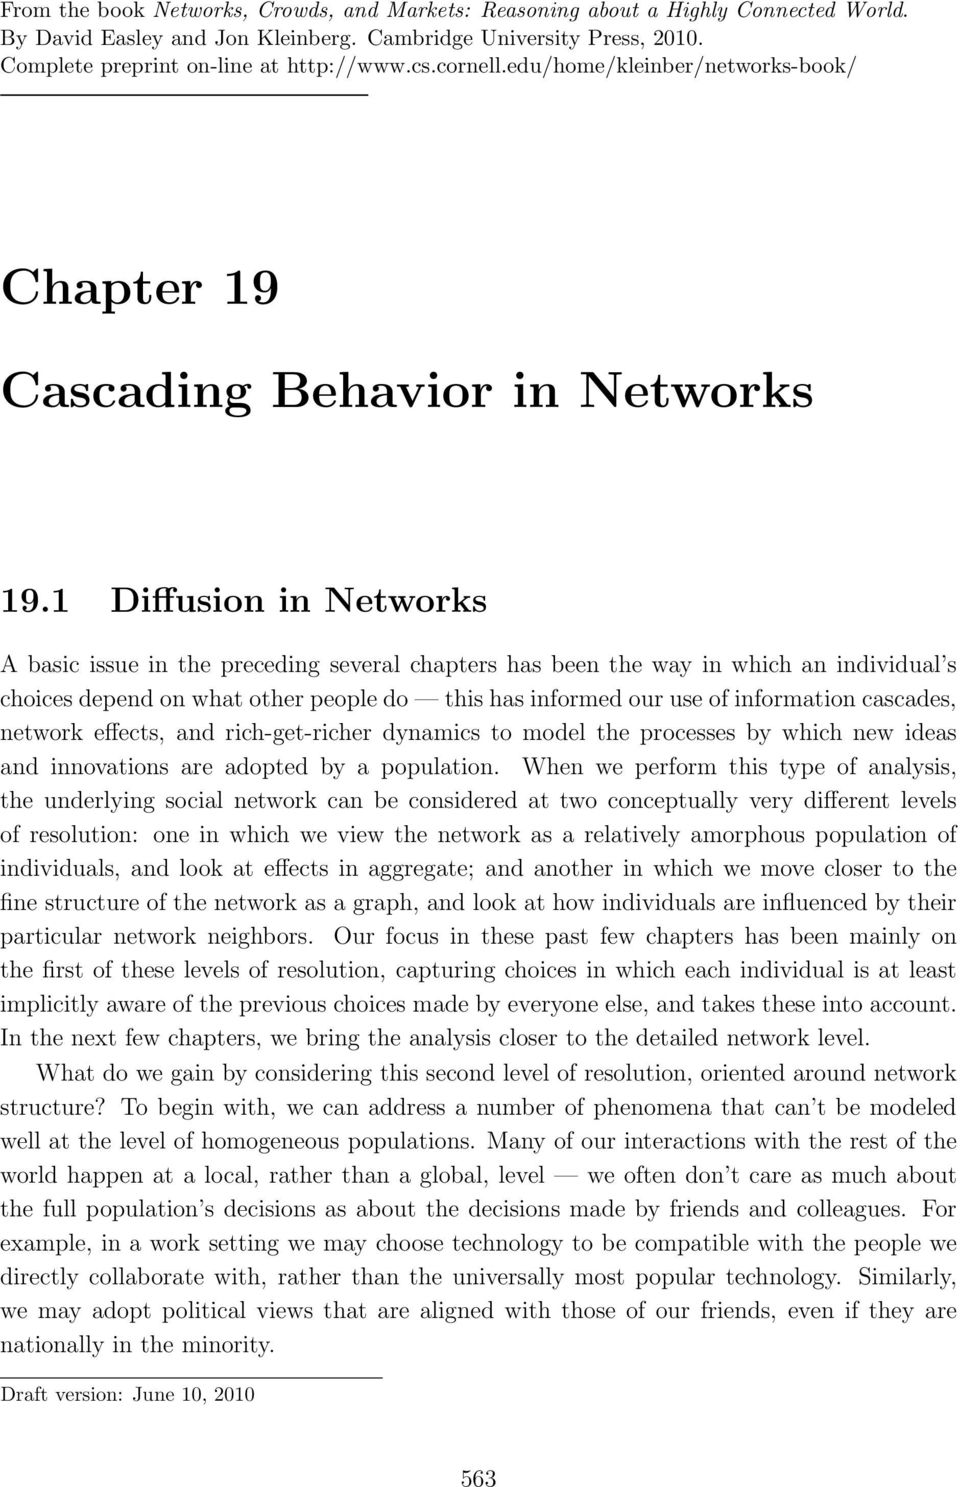 1 Diffusion in Networks A basic issue in the preceding several chapters has been the way in which an individual s choices depend on what other people do this has informed our use of information